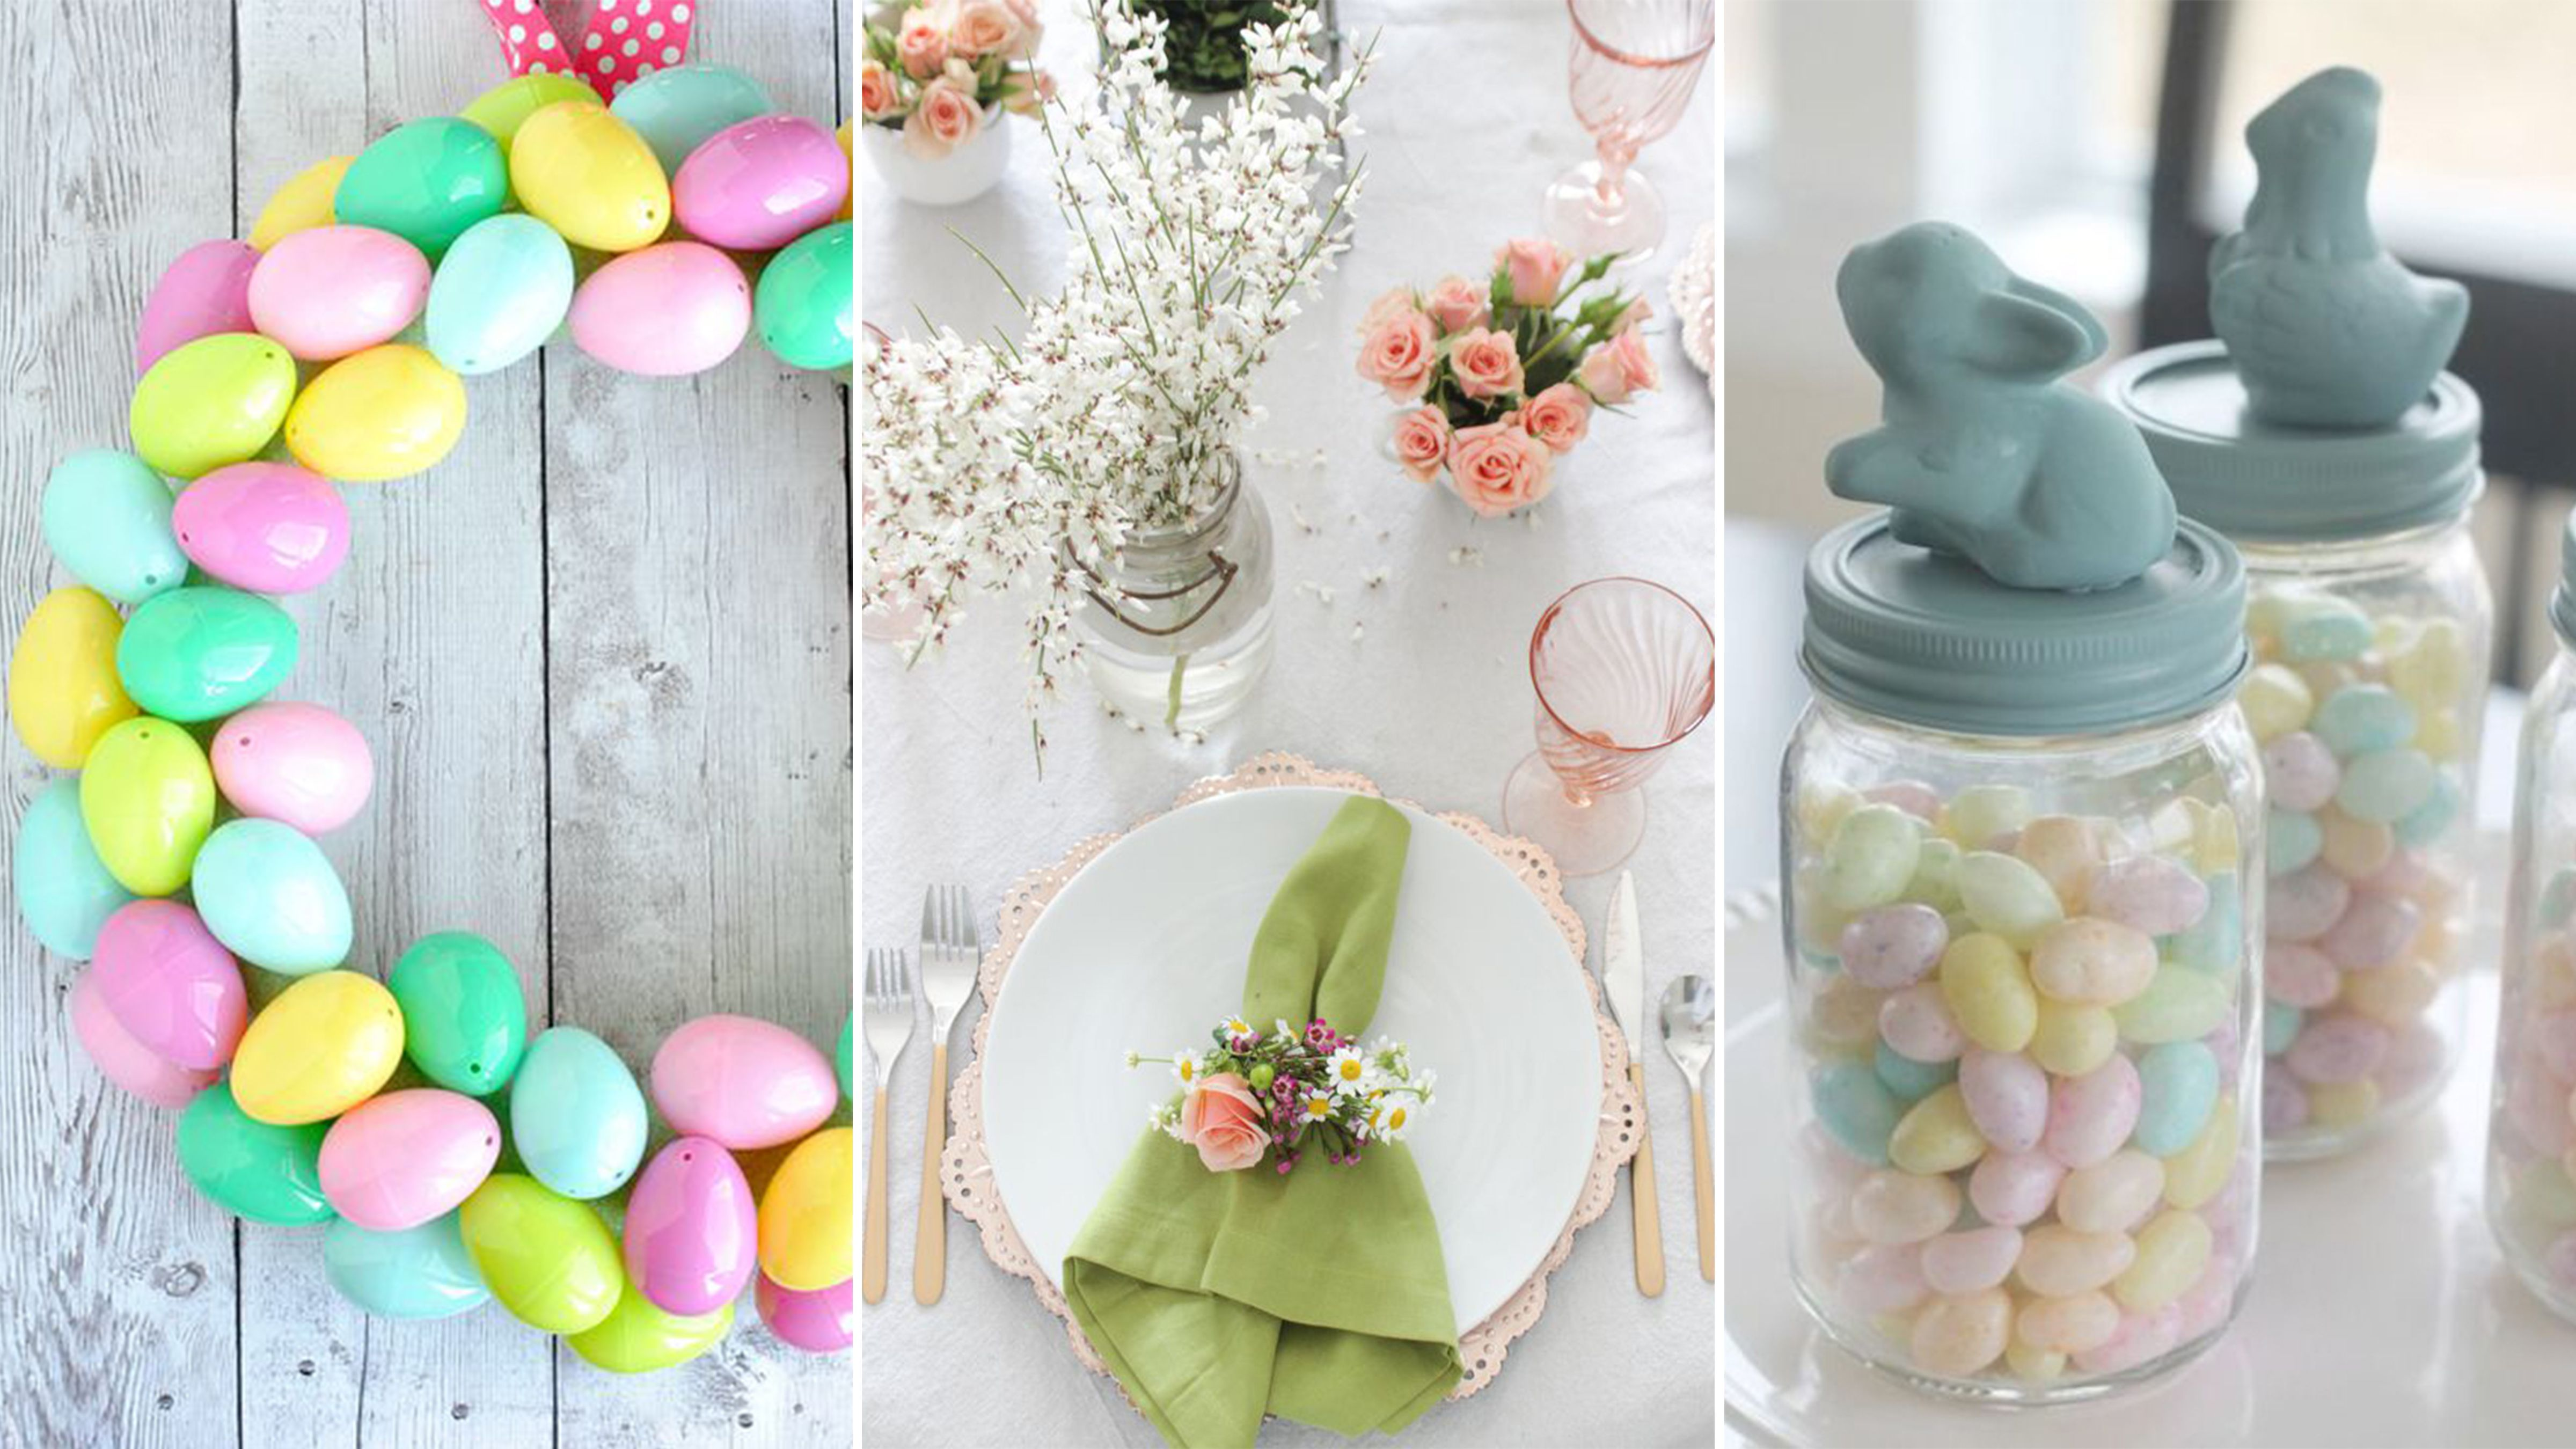 15 Dollar-Store Crafts That Double As Easter Decor